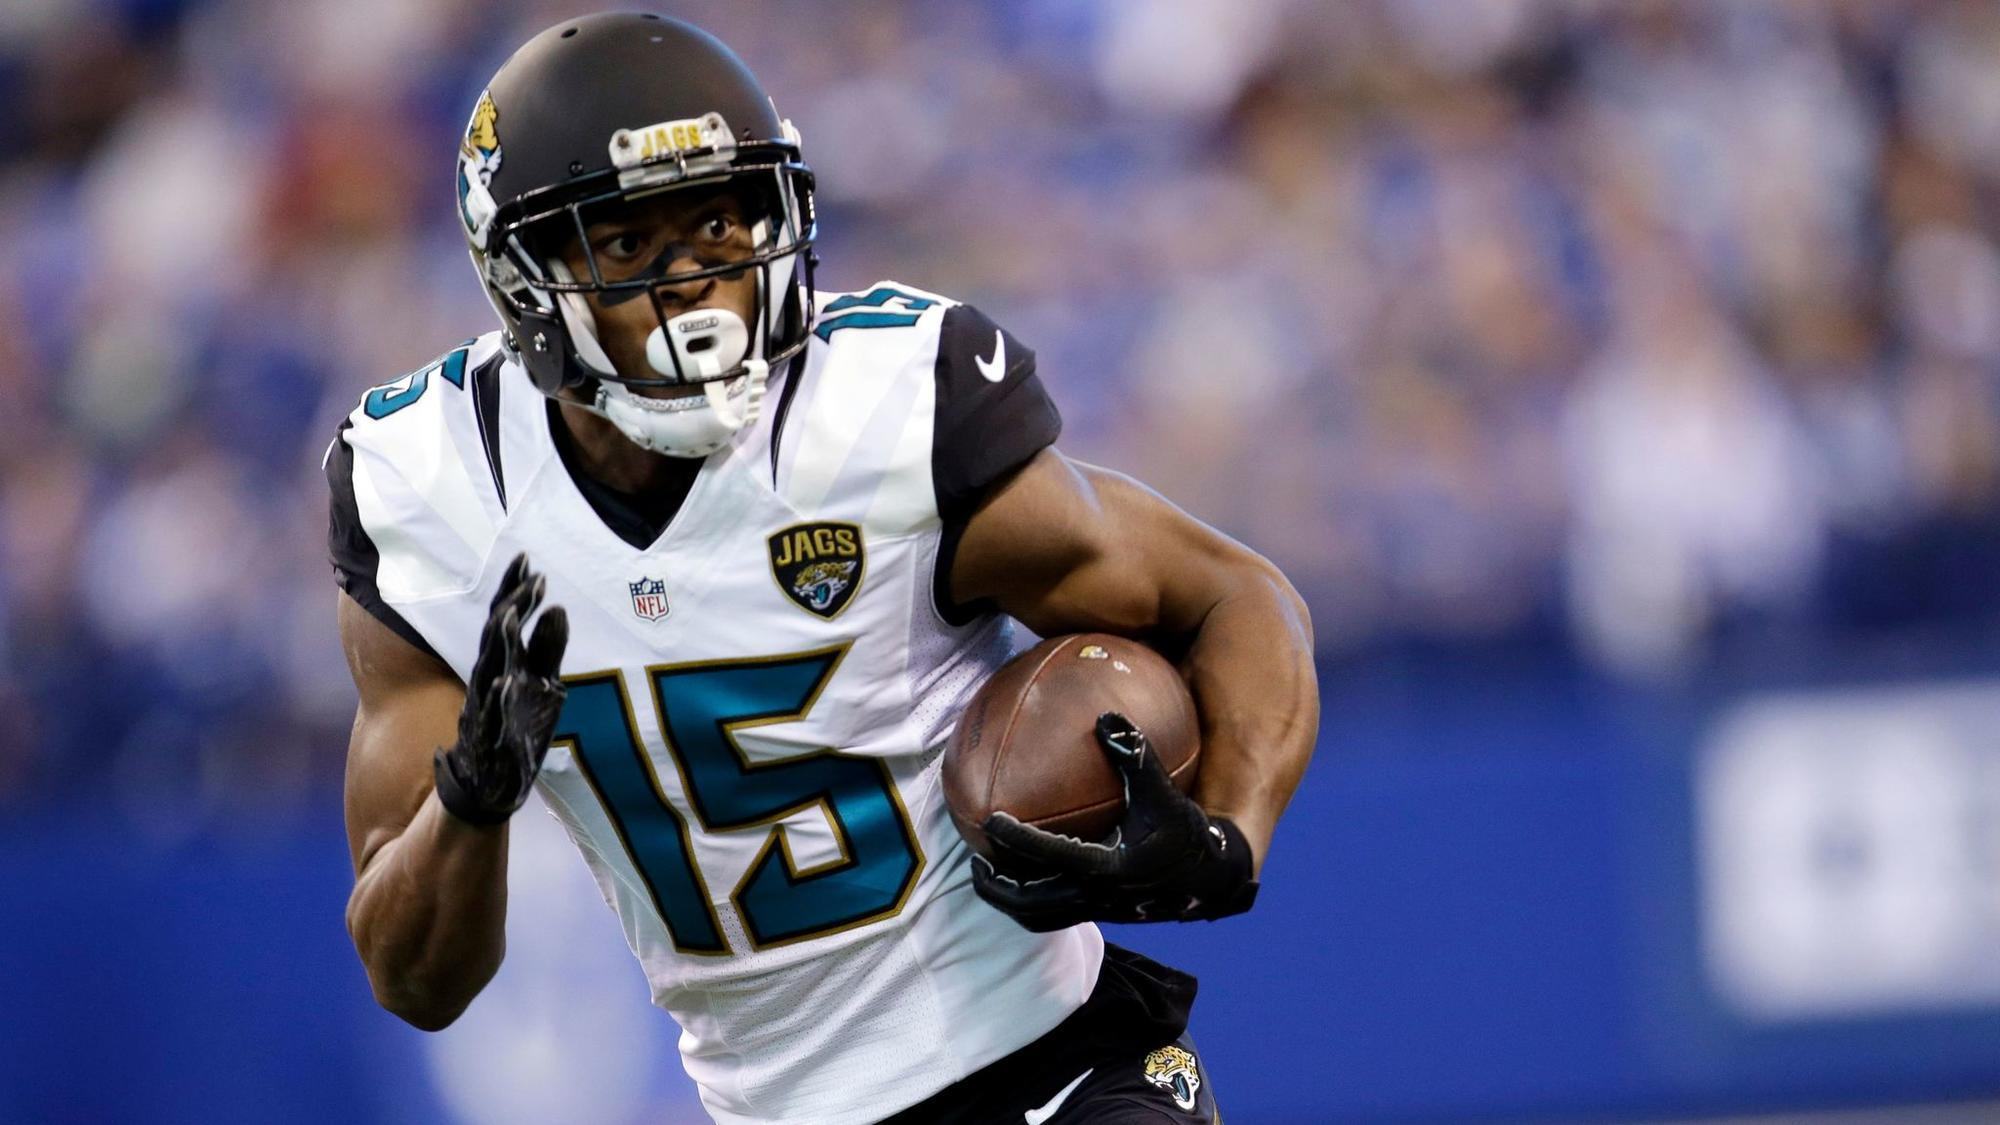 Free Agent Wr Allen Robinson Talks Potential Fit With Bears Or Ers Chicago Tribune